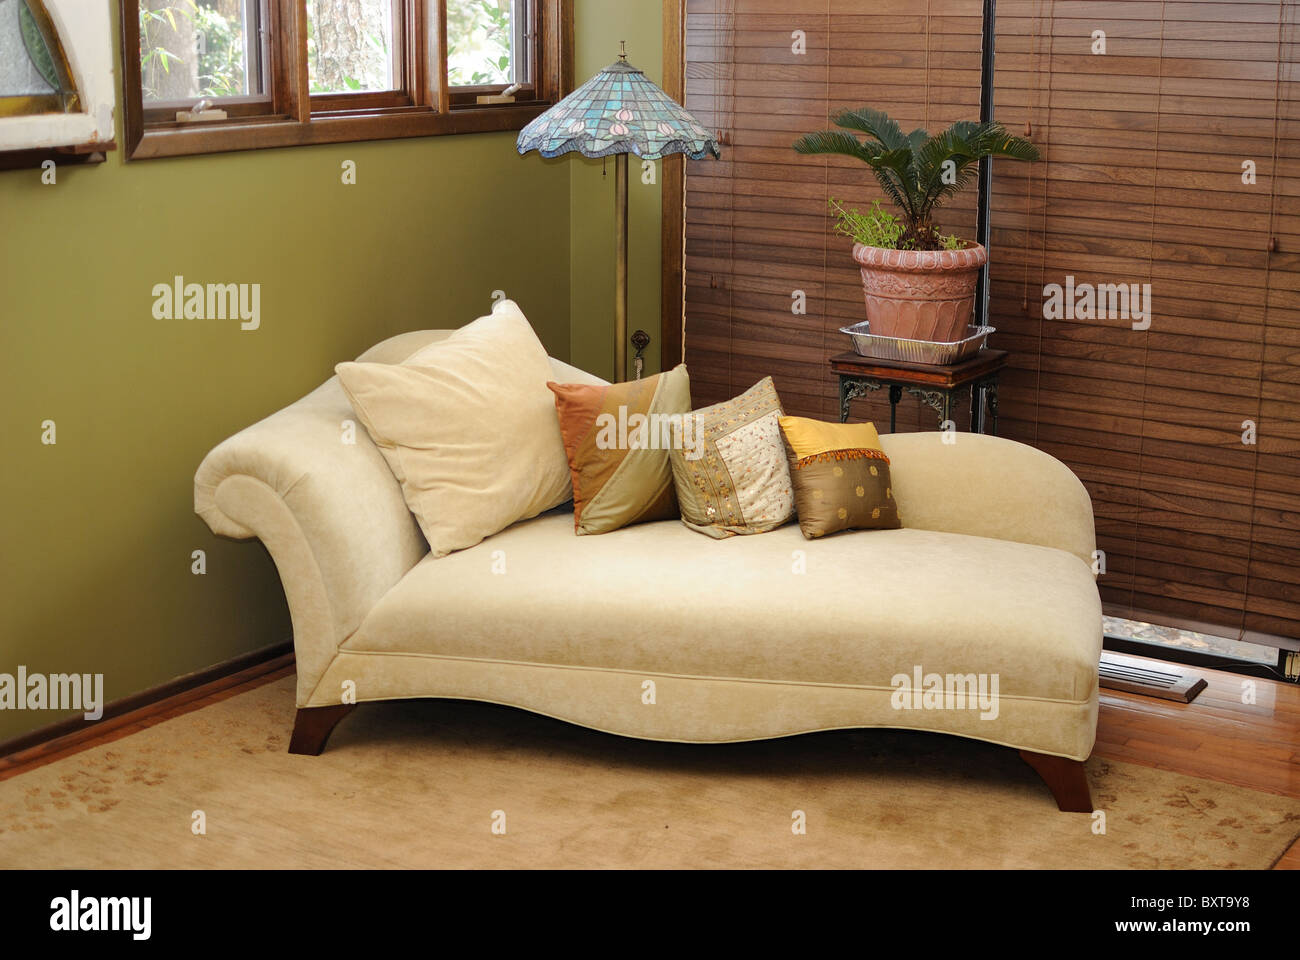 Plush Interior Lounge Chair in a home. - Stock Image